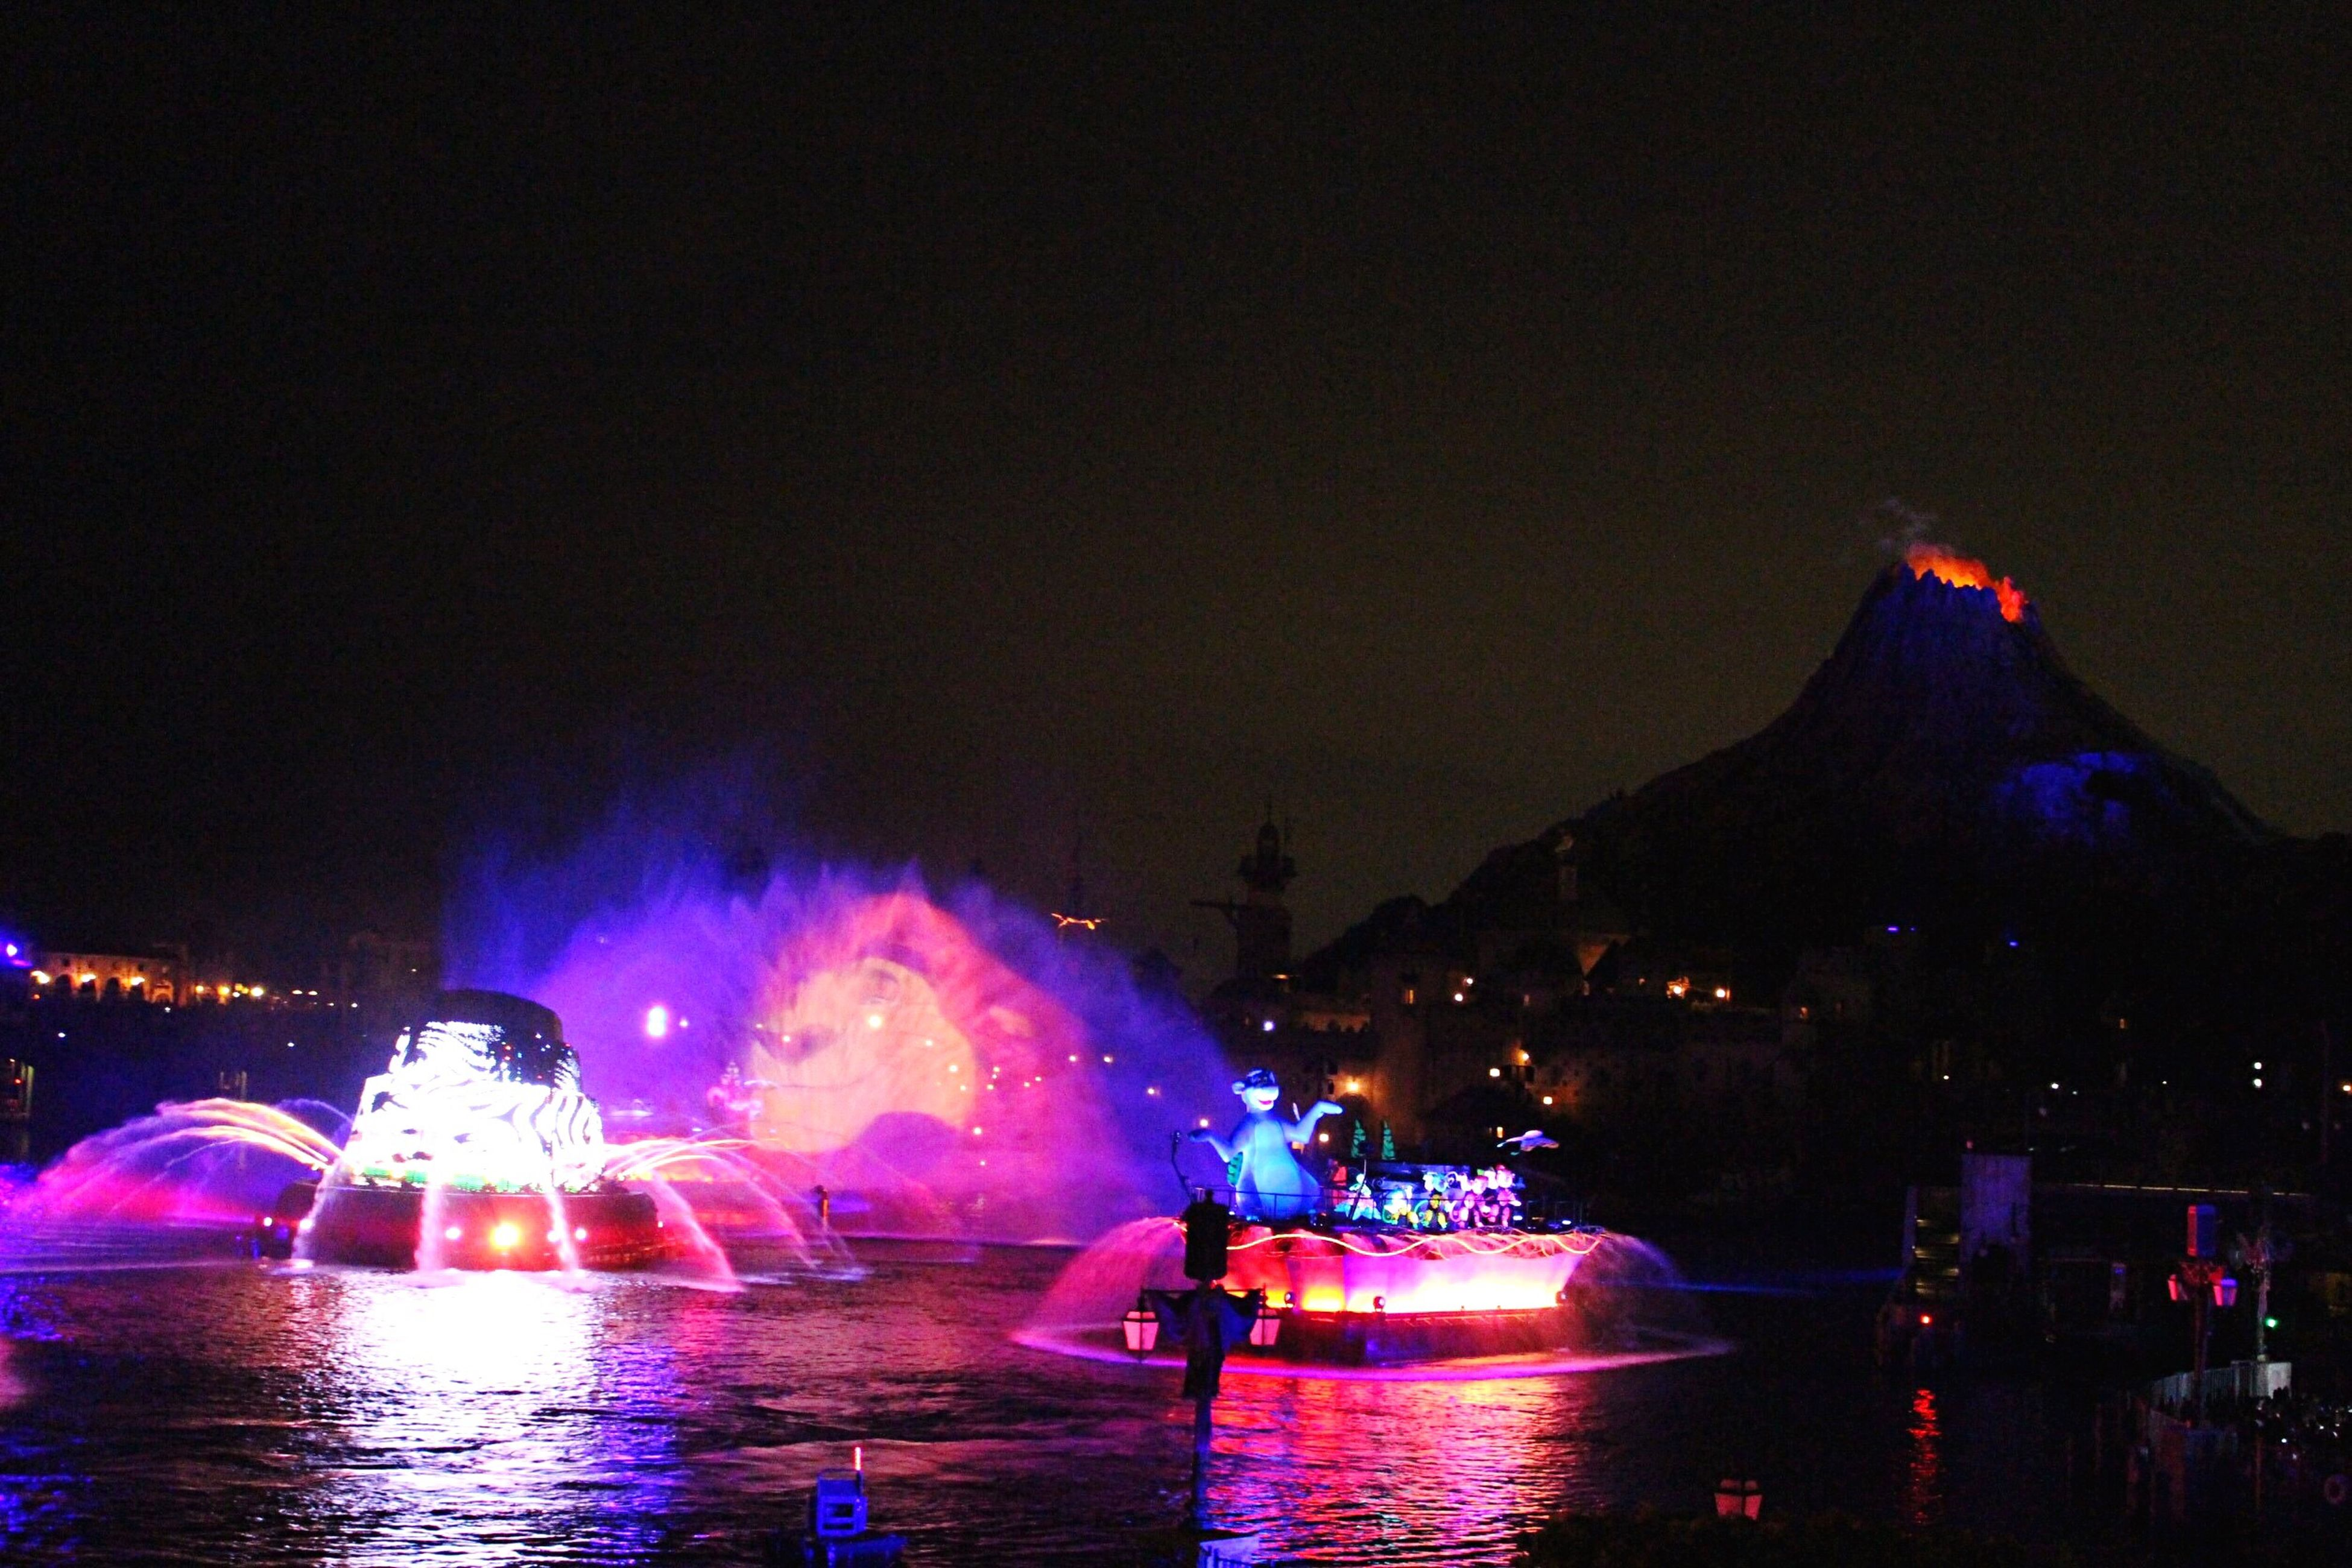 illuminated, night, water, waterfront, travel destinations, fountain, sky, multi colored, tourism, sea, outdoors, city life, pink color, dark, harbor, famous place, vacations, scenics, firework - man made object